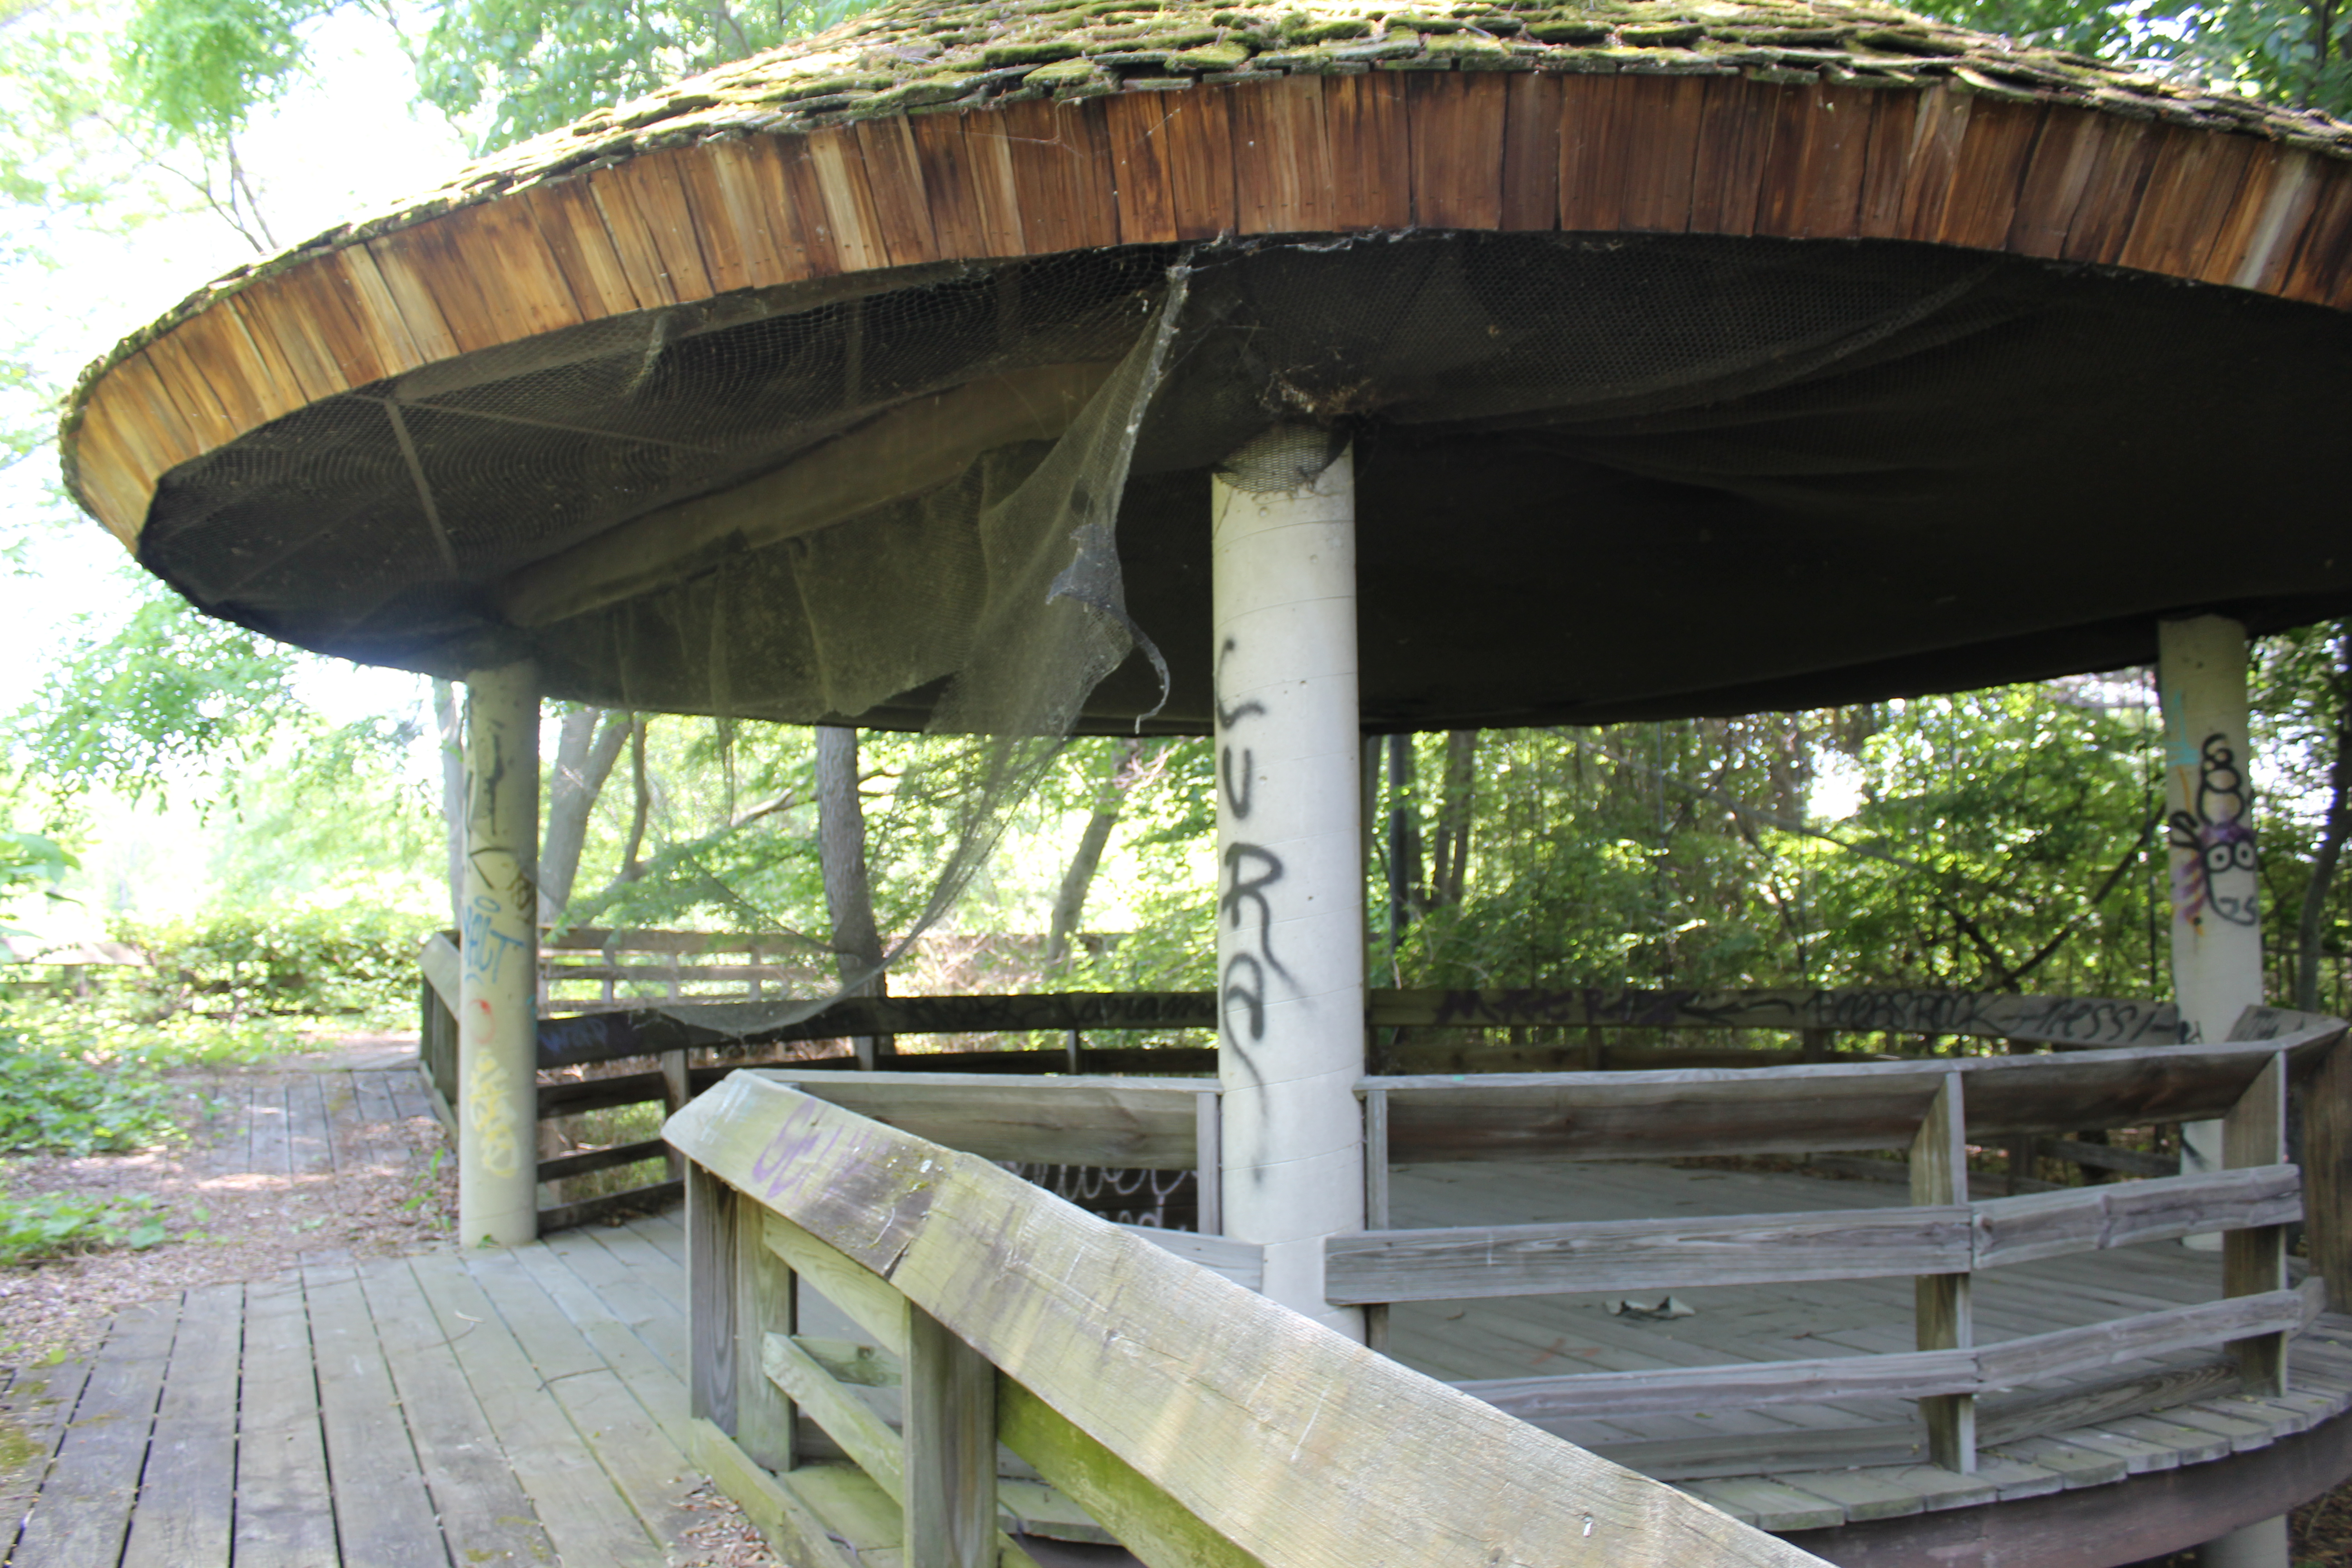 Wooden observation area at Belle Isle Zoo